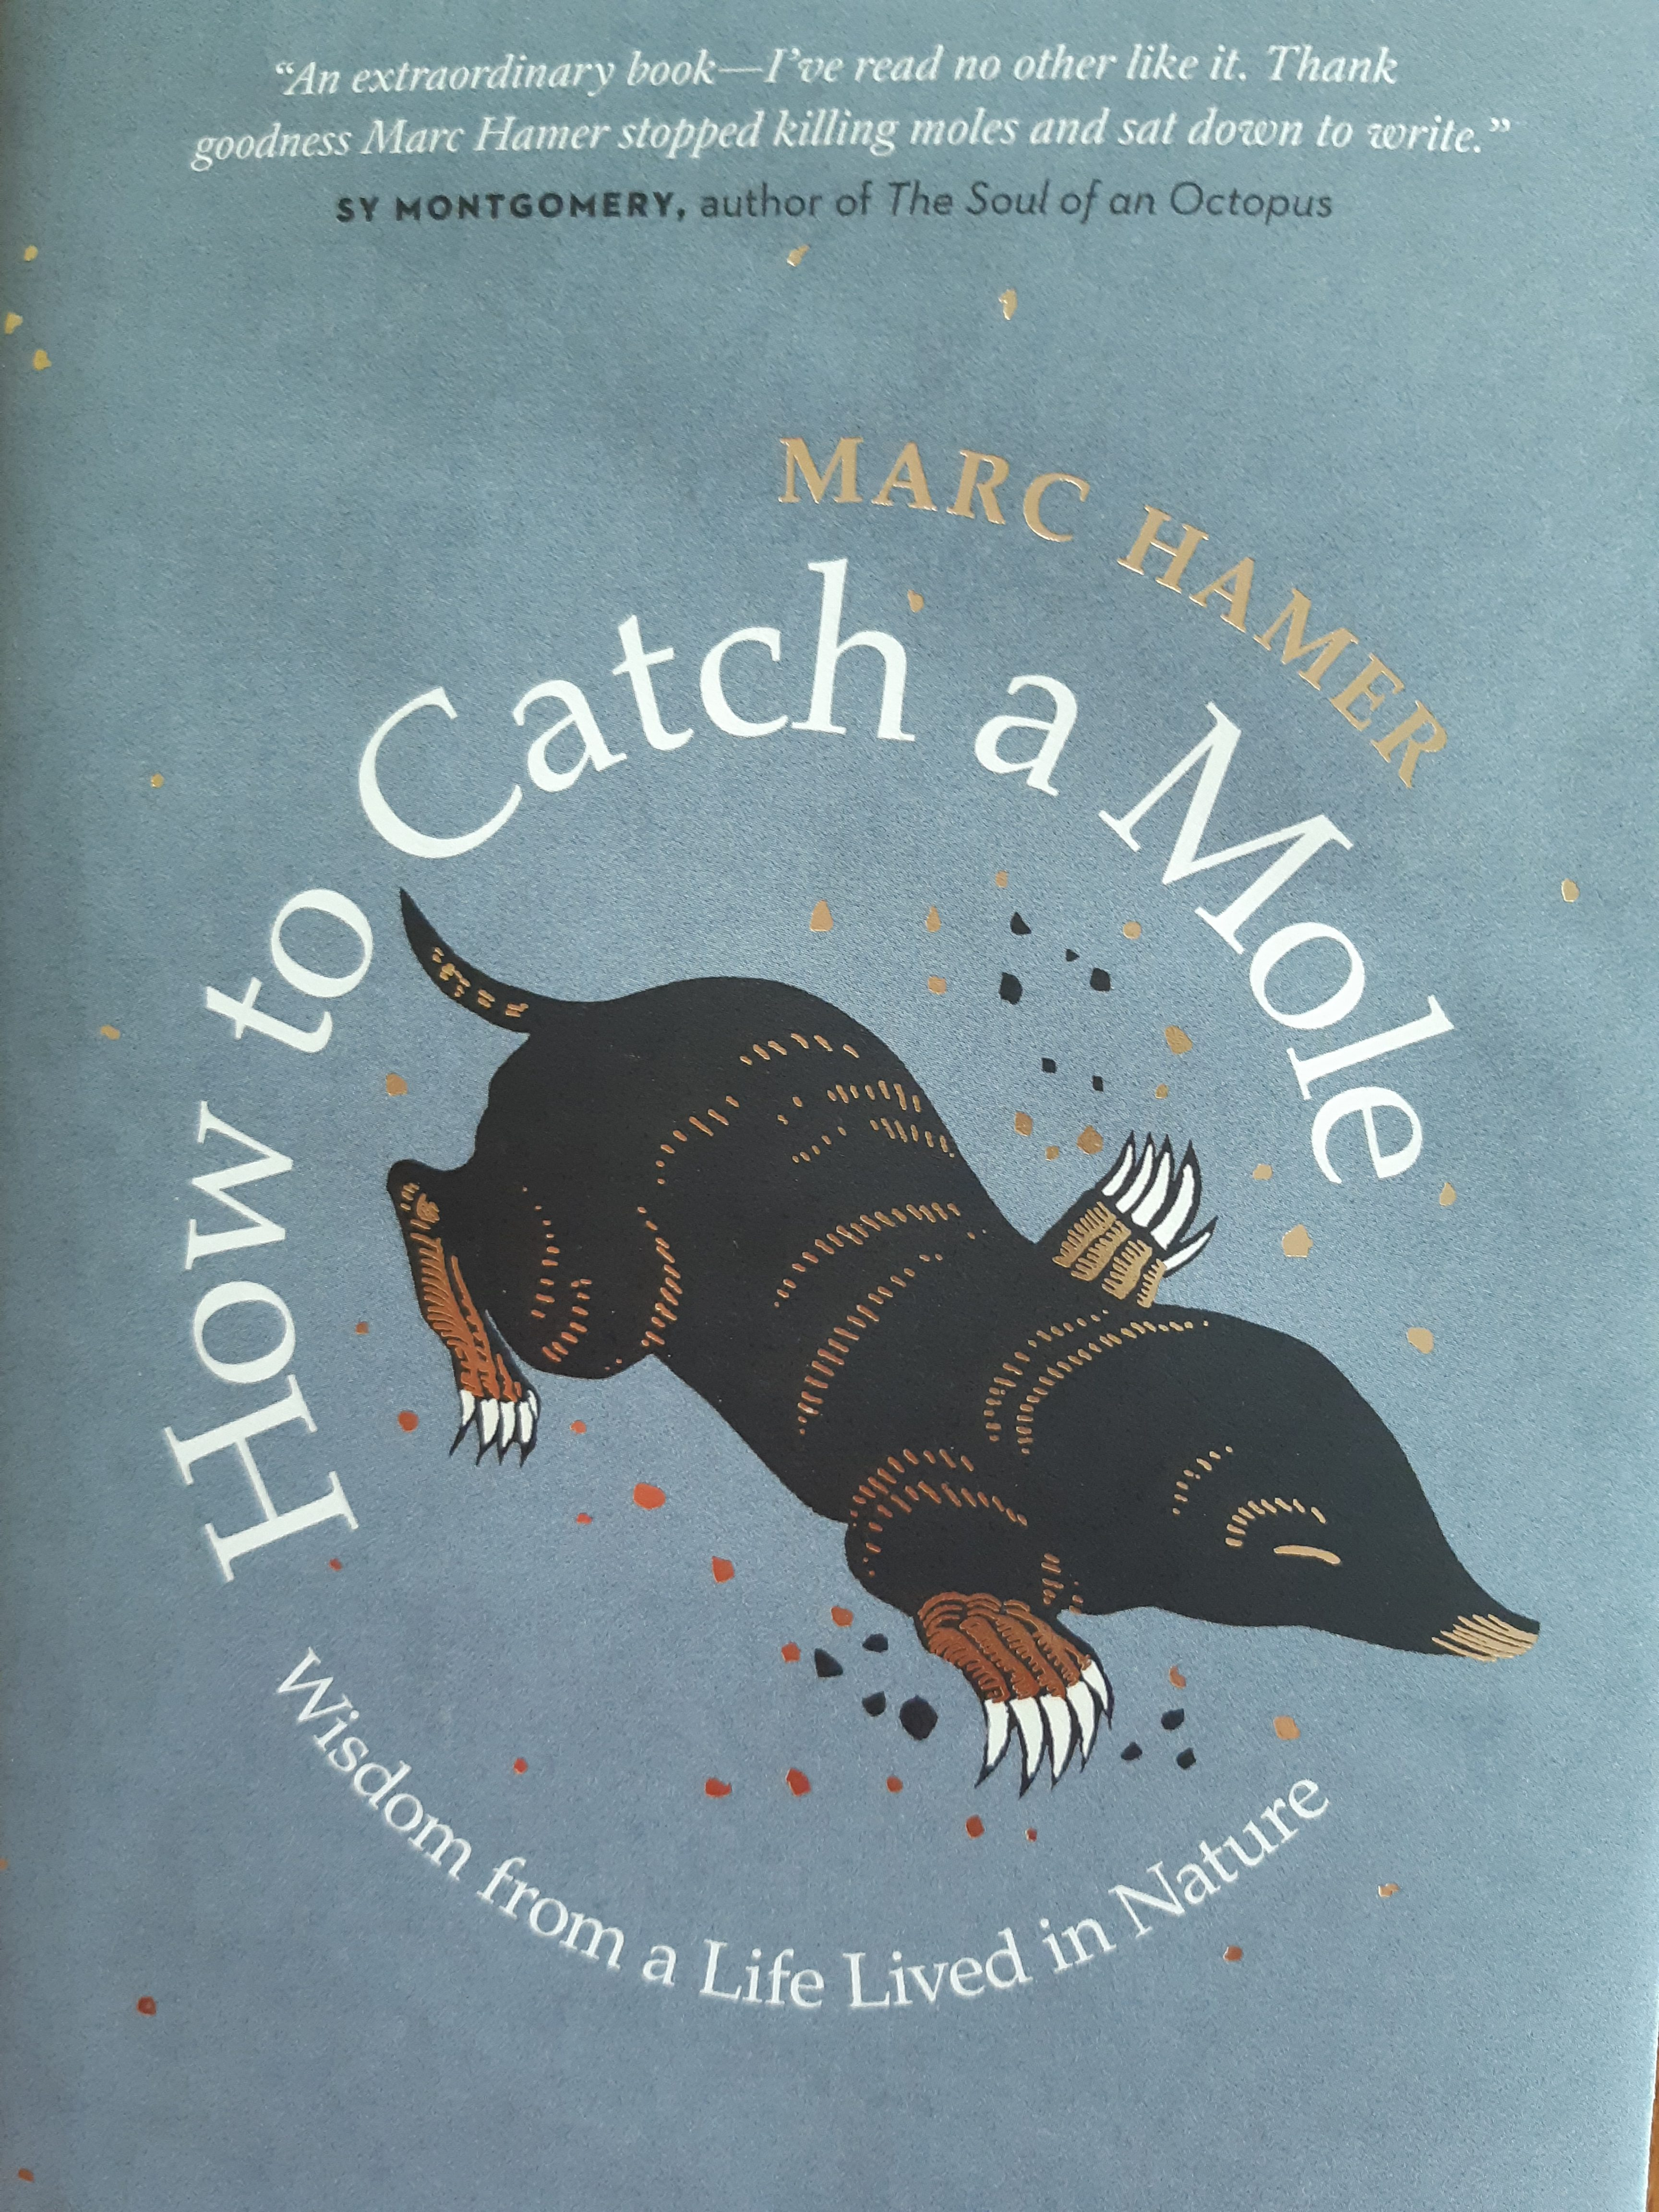 OCTOBER NATURE BOOK OF THE MONTH IS HOW TO CATCH A MOLE BY MARC HAMER